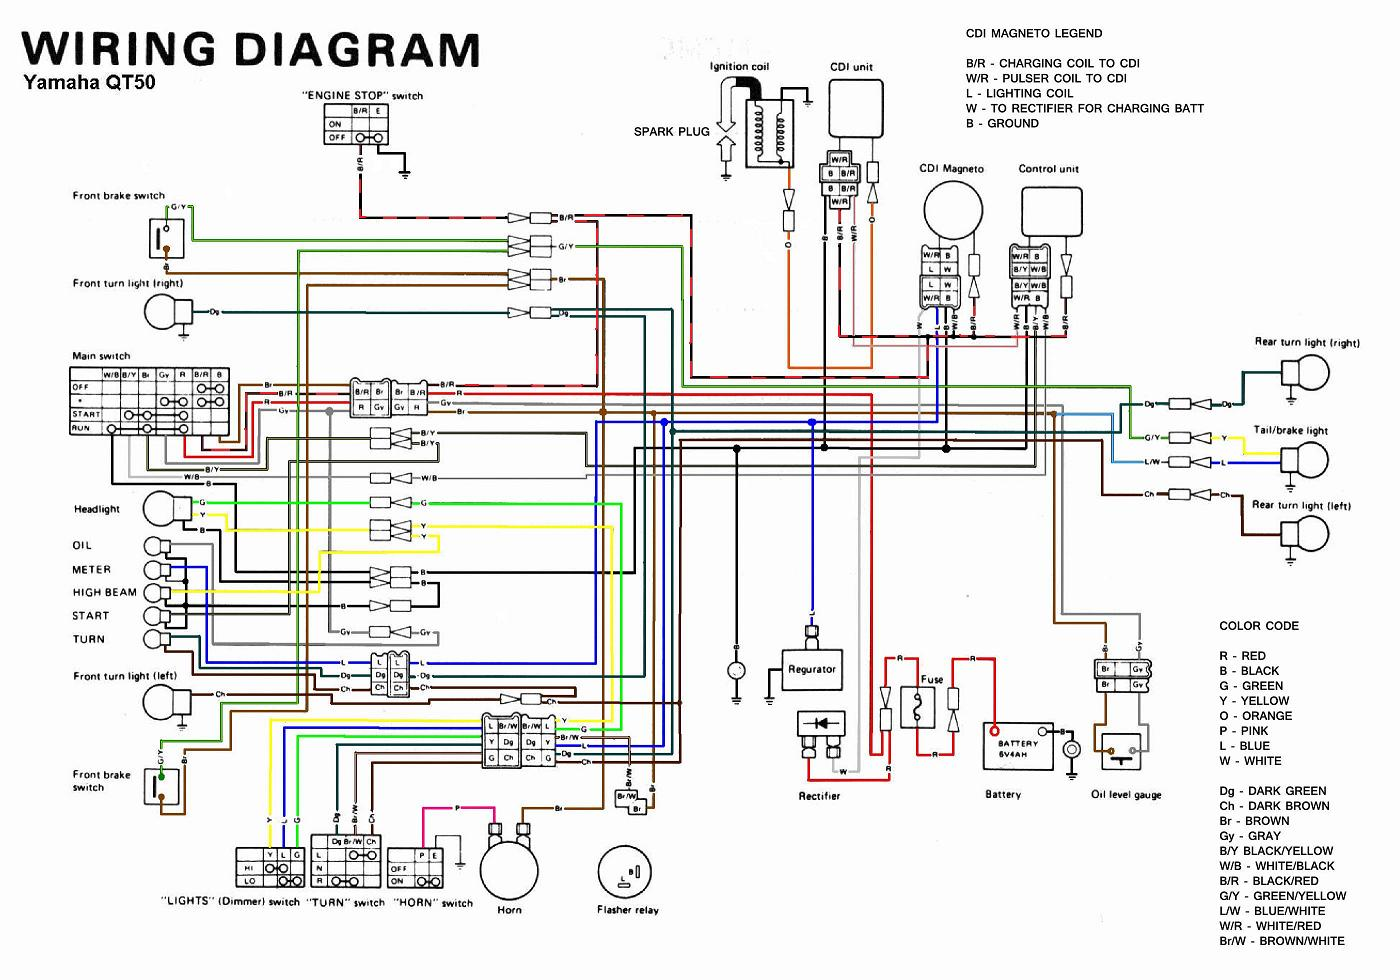 Magnificent Ktm 500 Exc Wiring Diagram Likewise Switch Wiring Diagram On Xr650R Wiring 101 Akebretraxxcnl